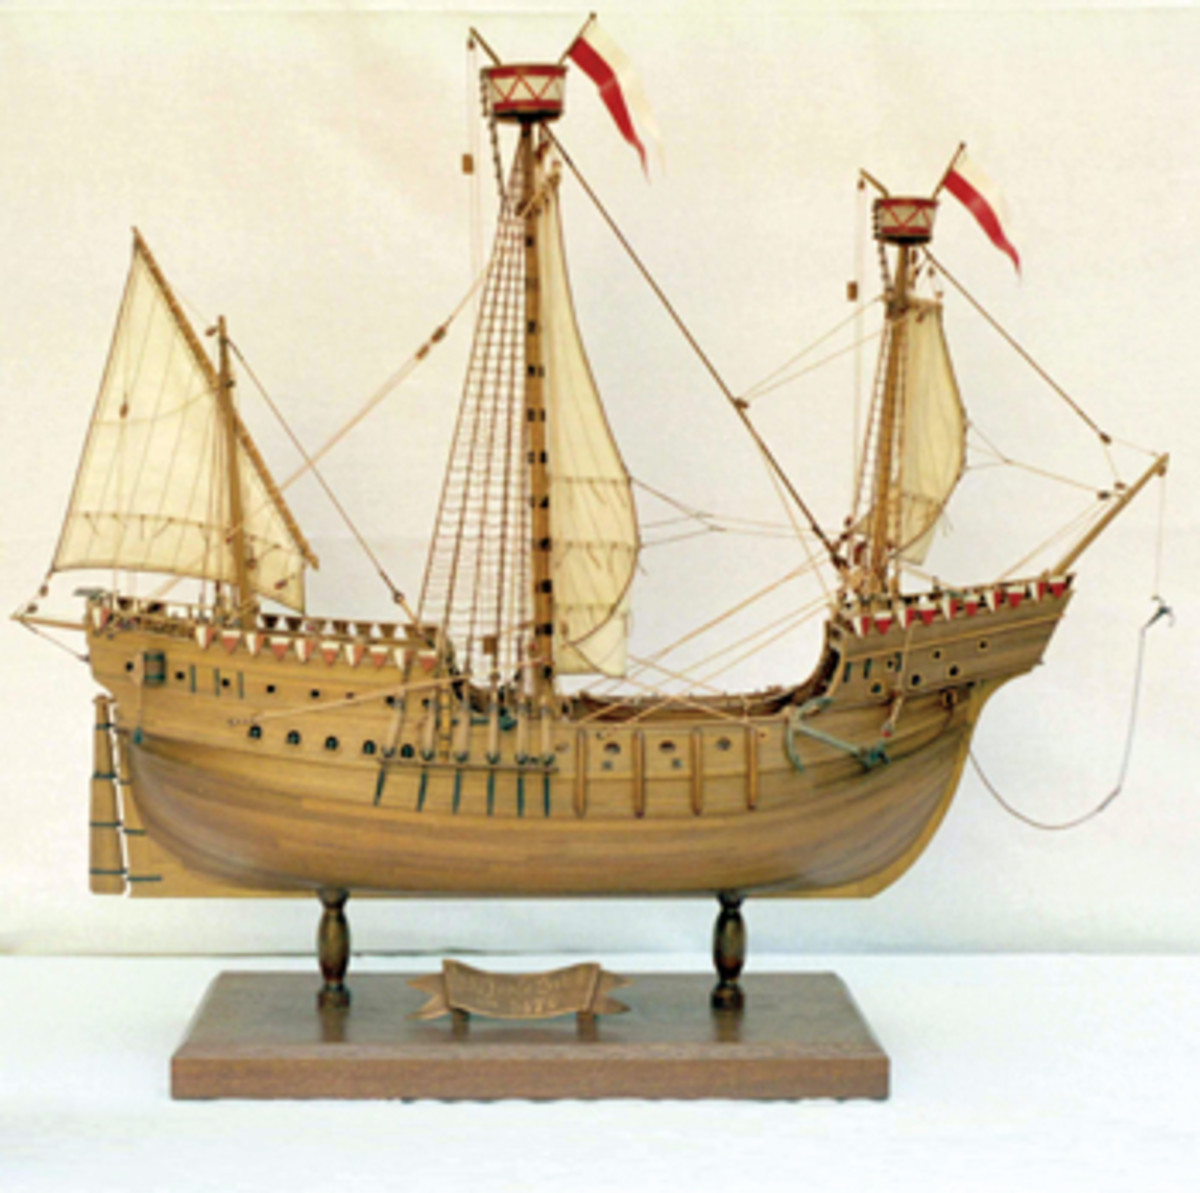 The Hanneke Wrome's cargo included 10,000 gold guilders when it sank in 1468.